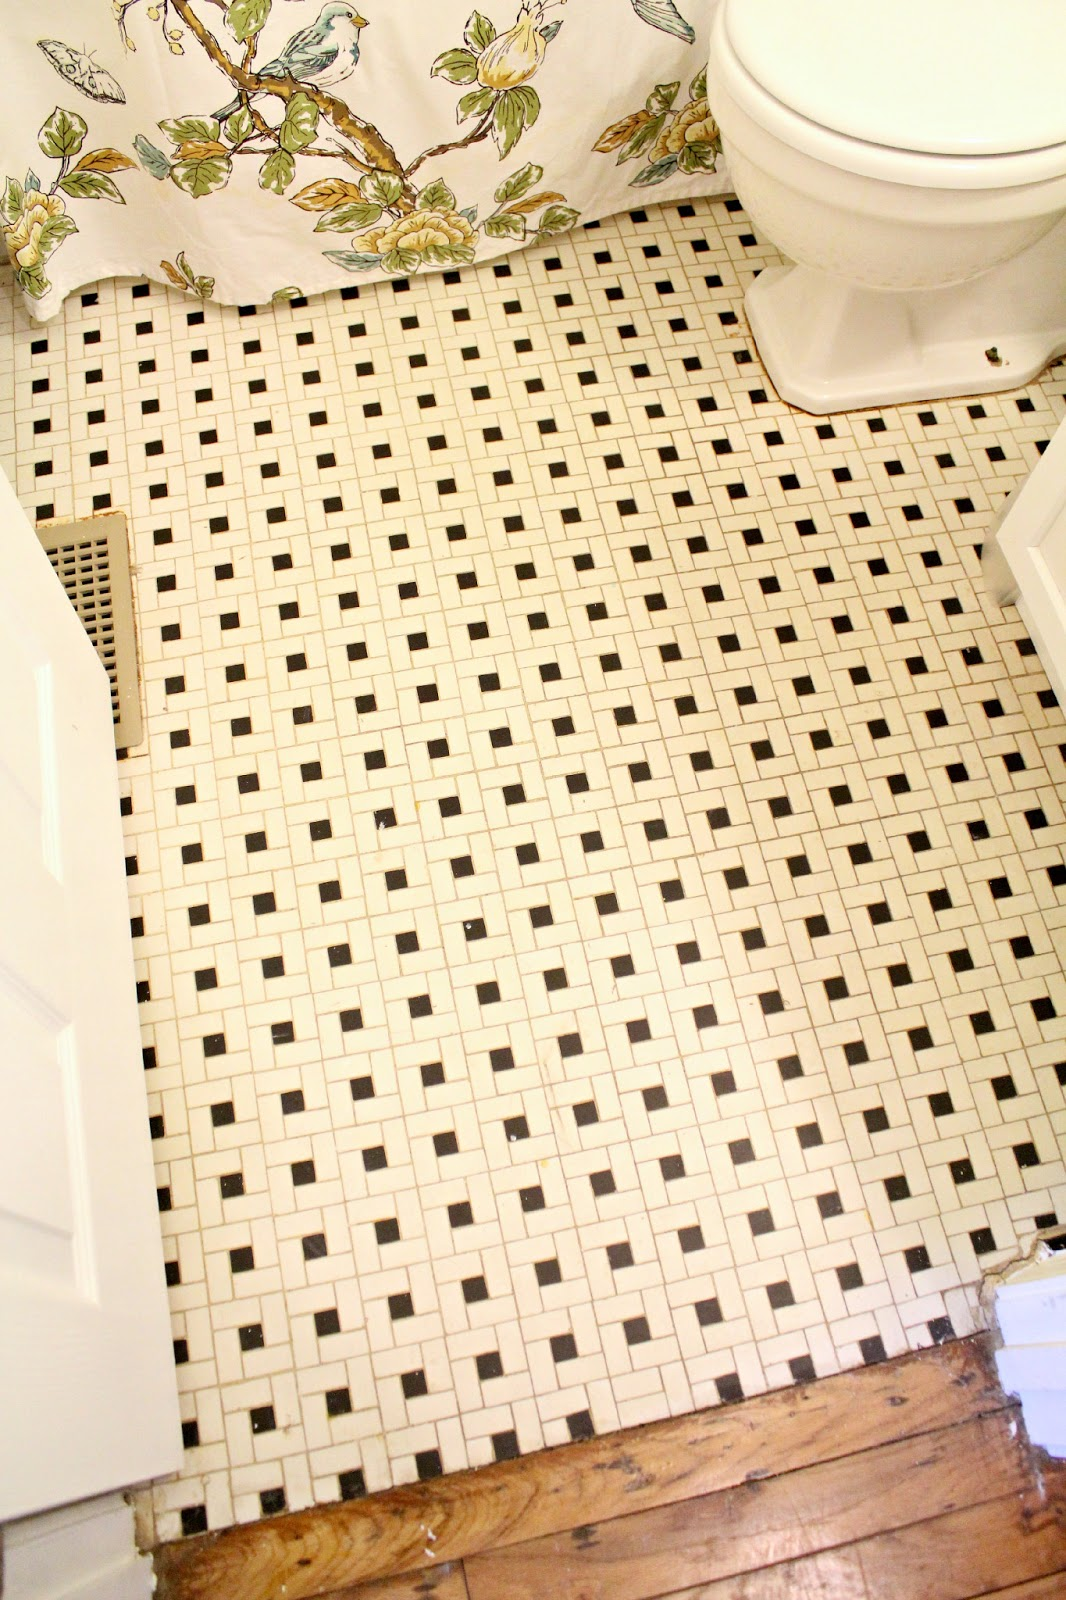 Our Rental House: The Bathrooms